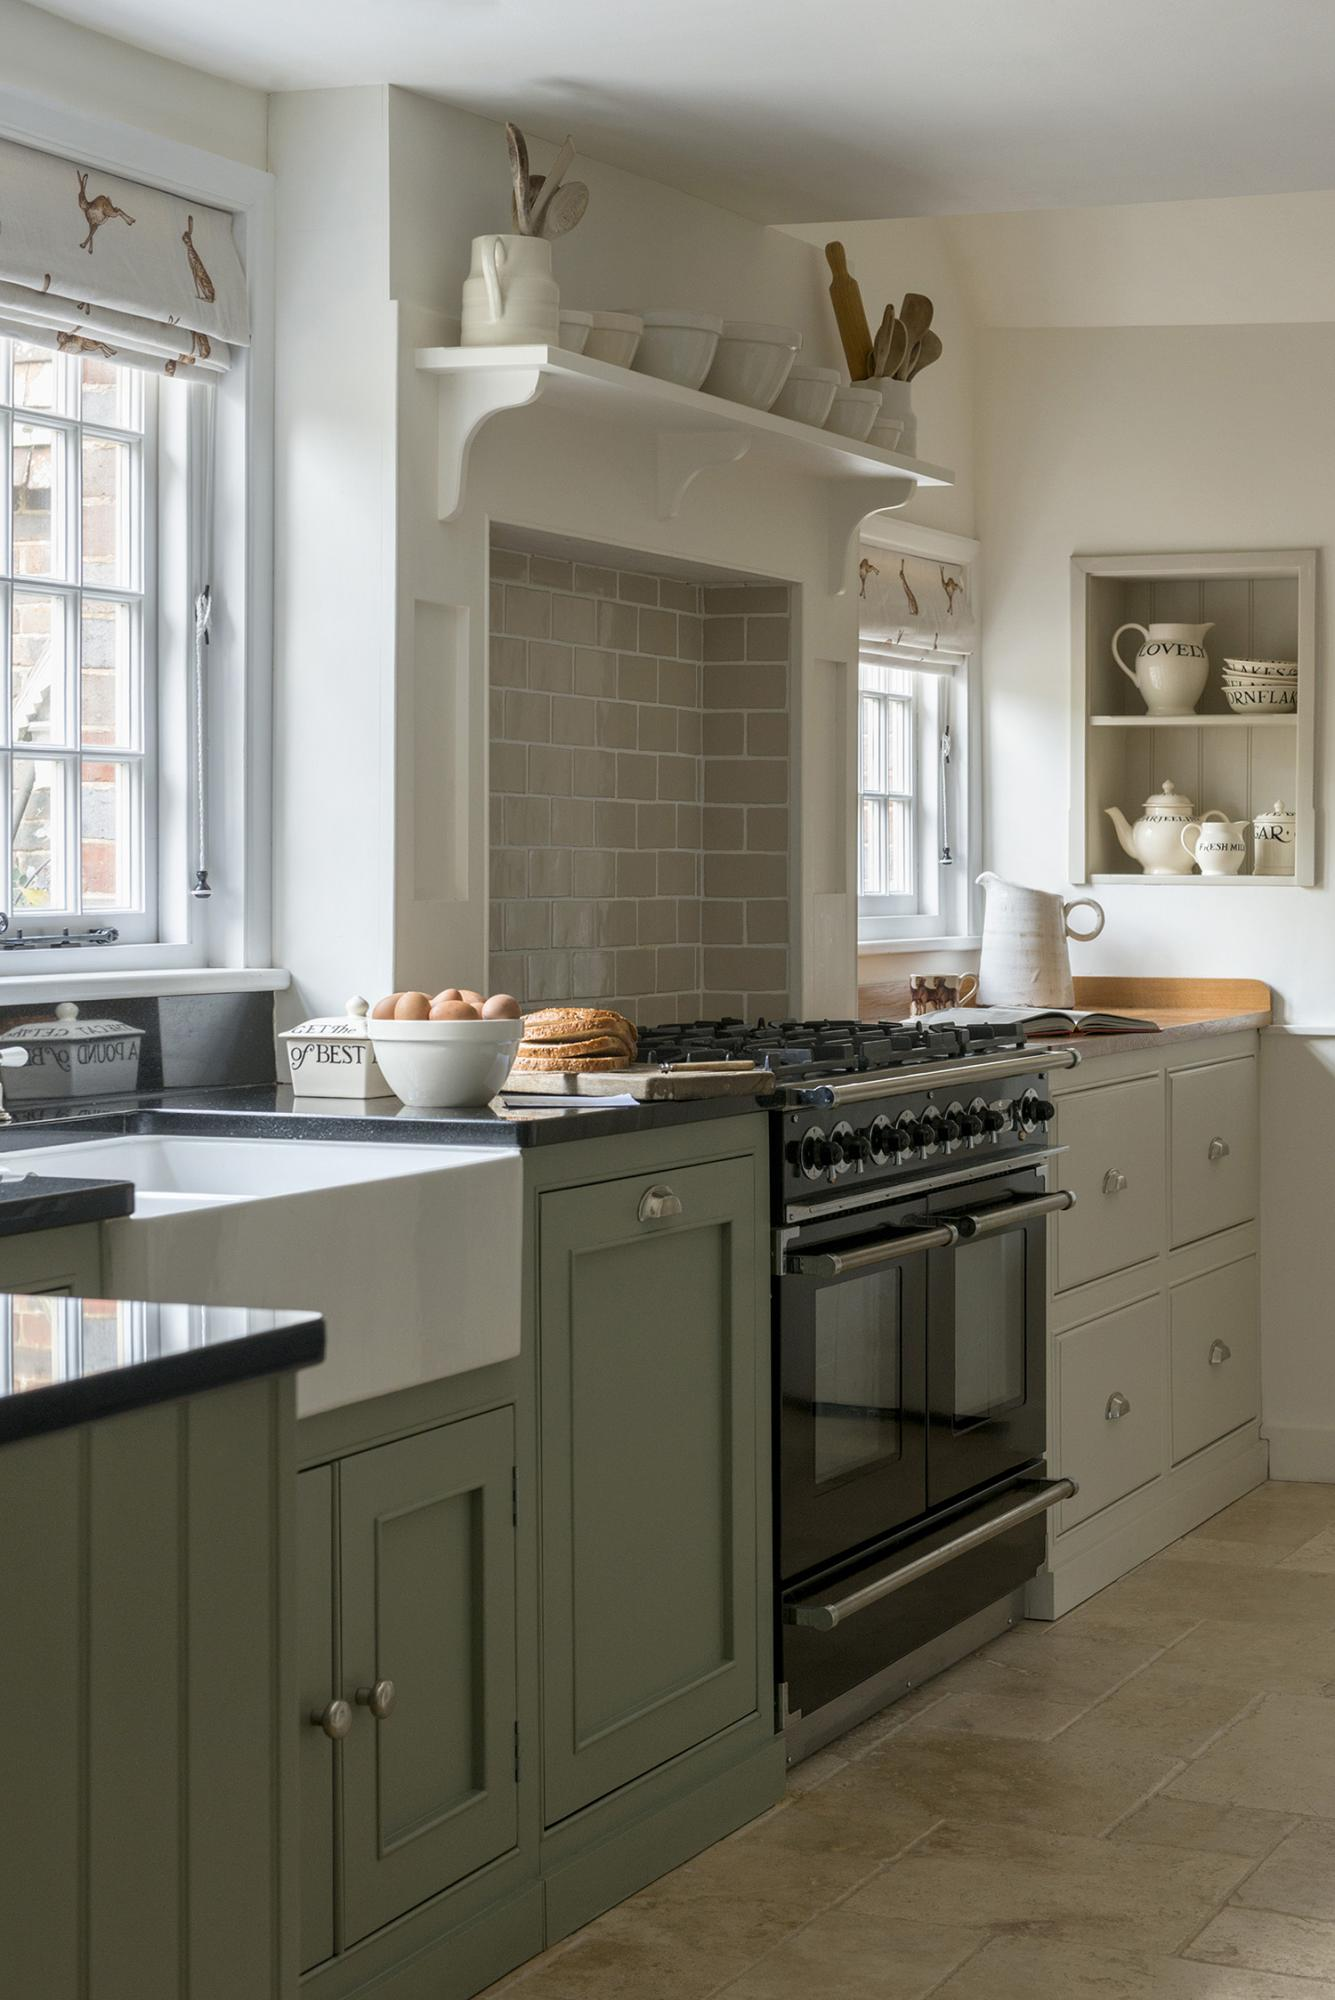 Farmhouse country kitchens design sussex surrey for New kitchen london